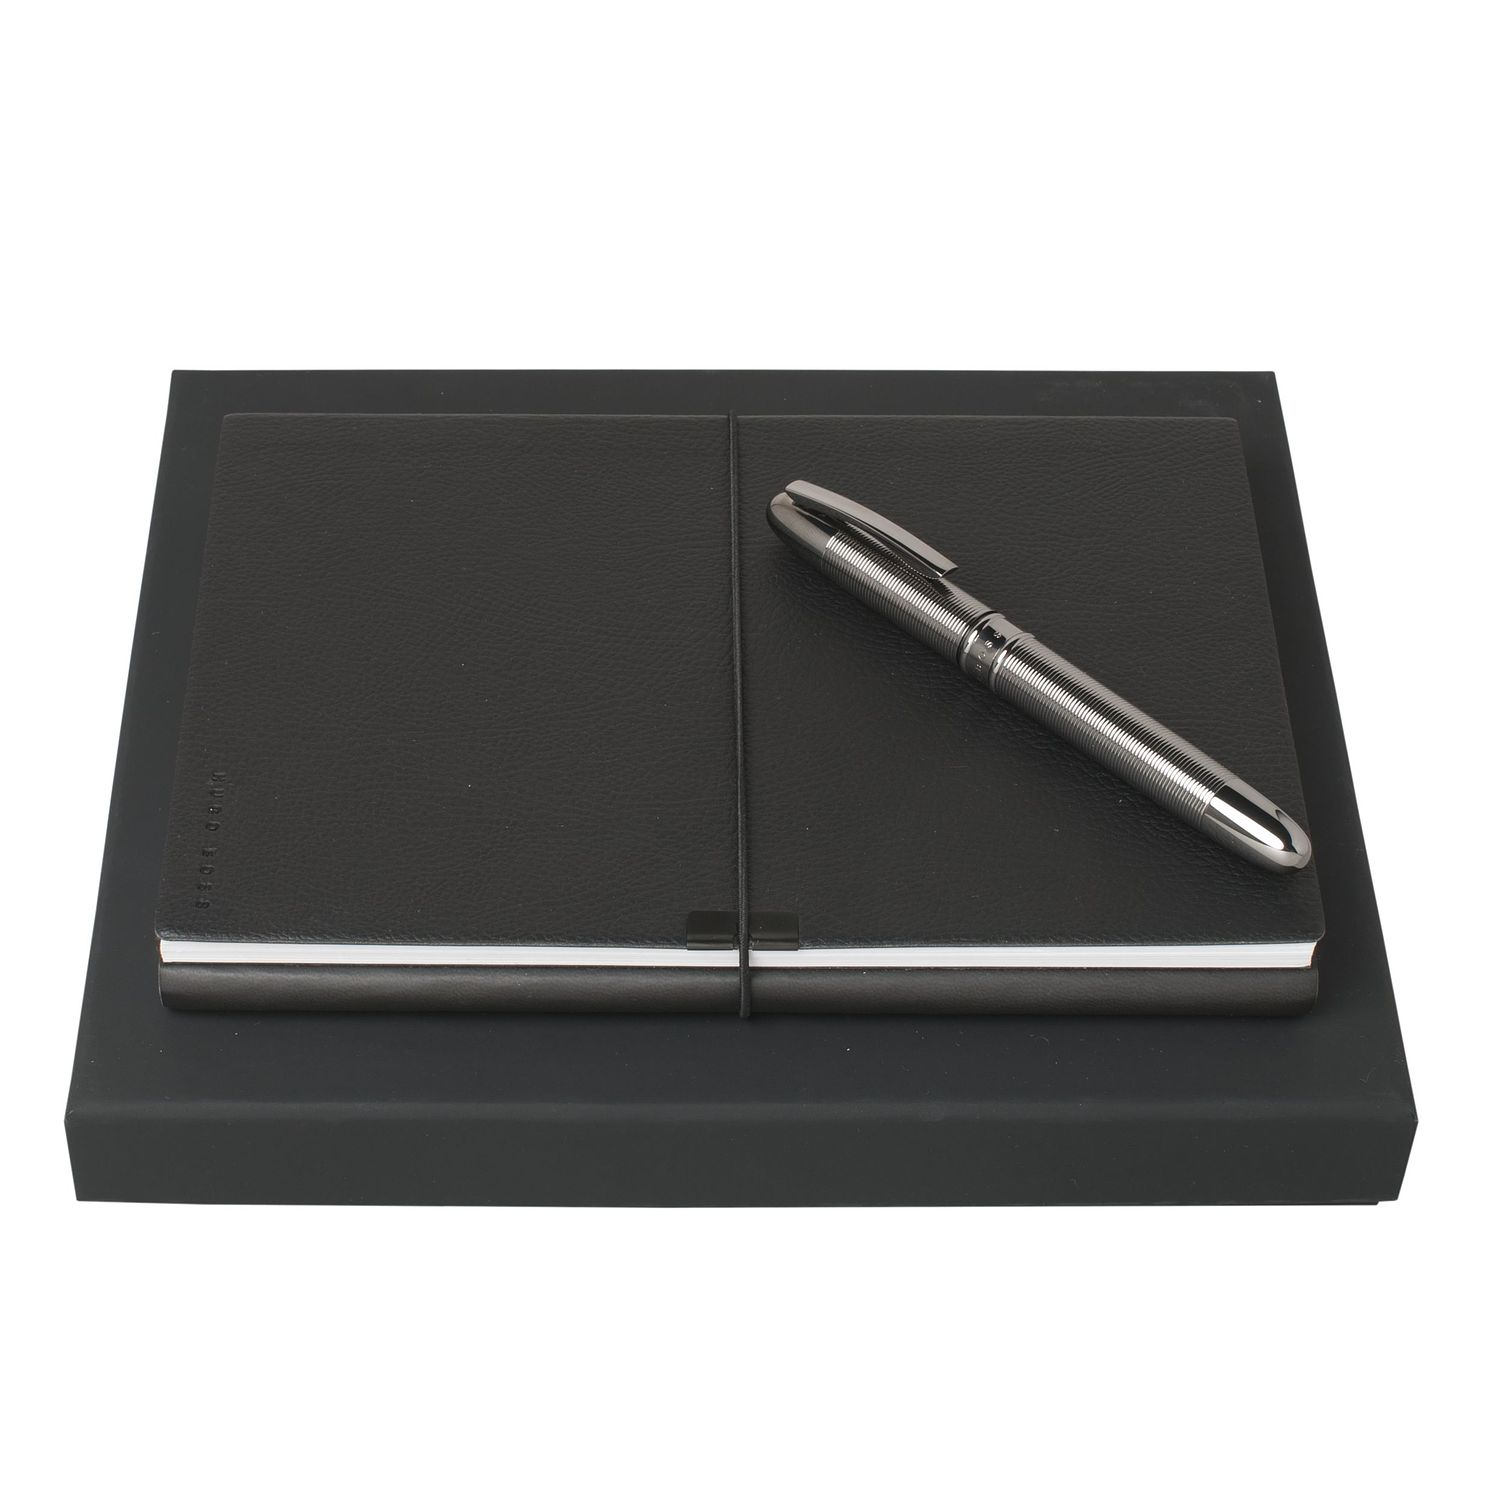 BOSS Dark Chrome Rollerball Pen & A5 Notepad Gift Set - Product number 2622319